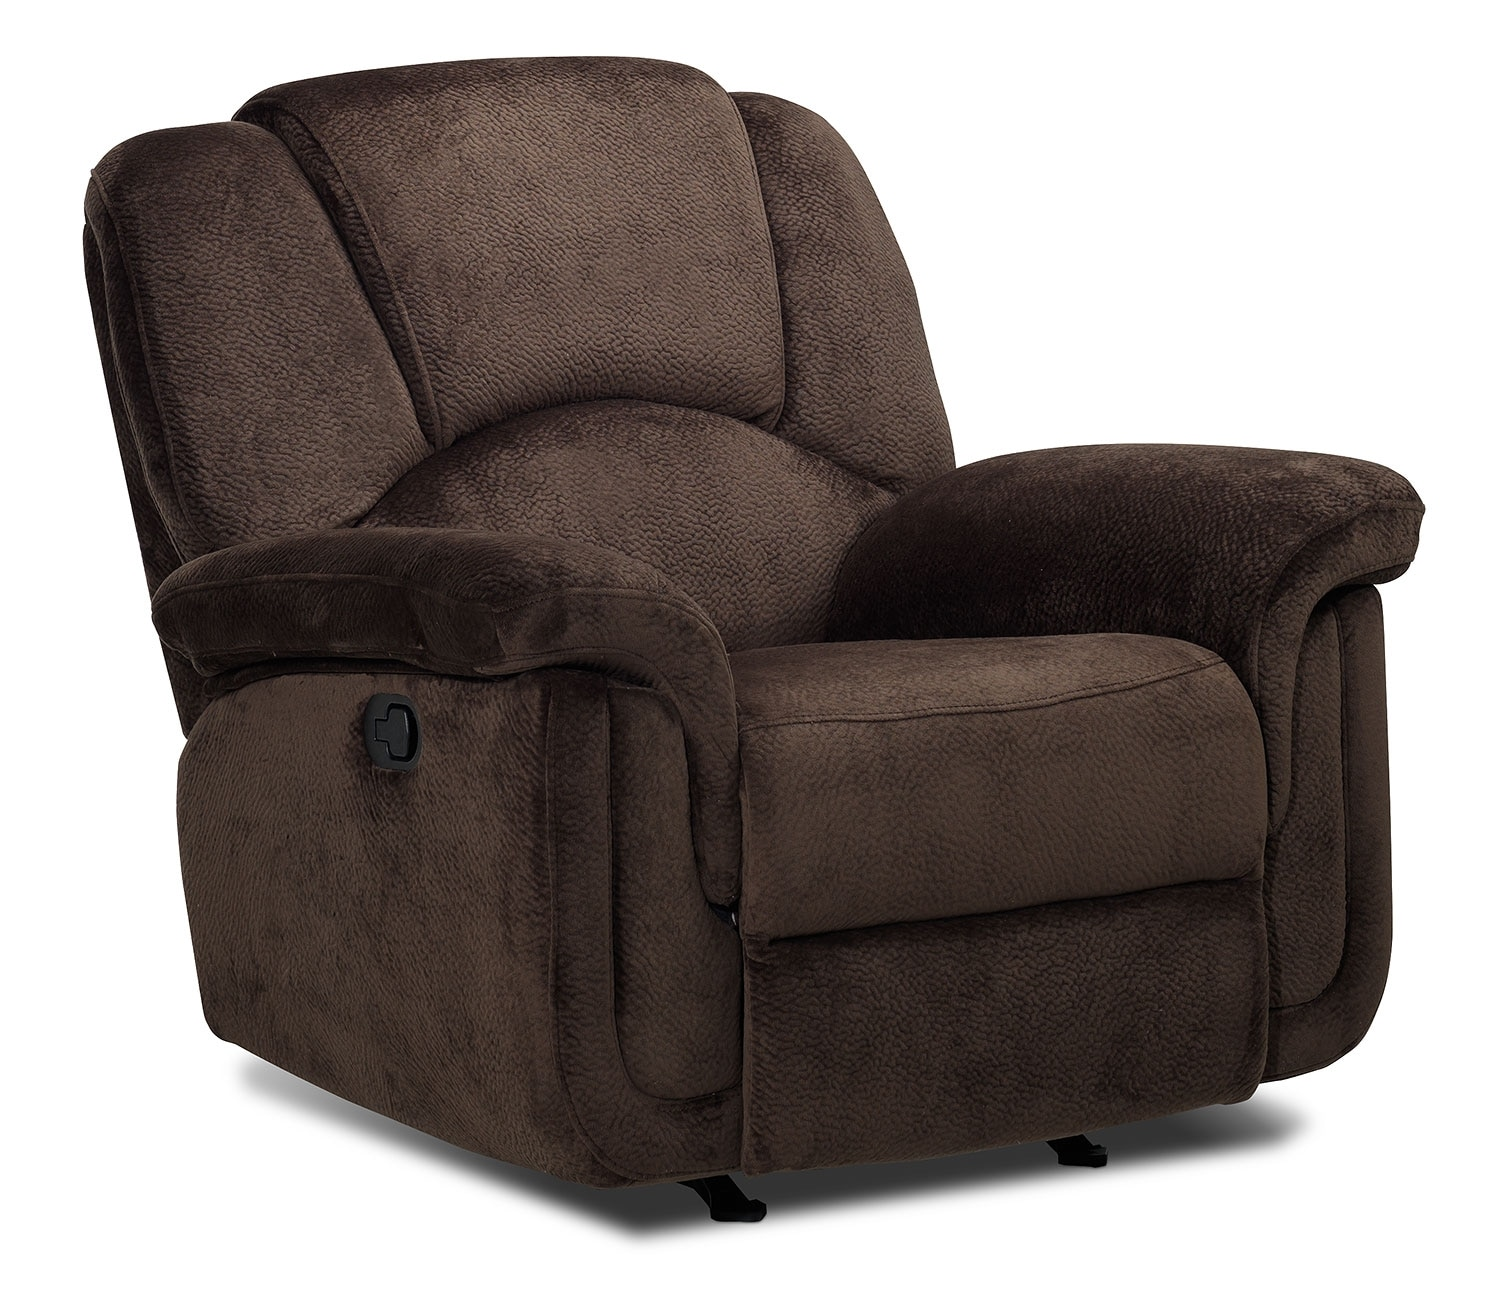 [Pitch Glider Rocker Recliner]